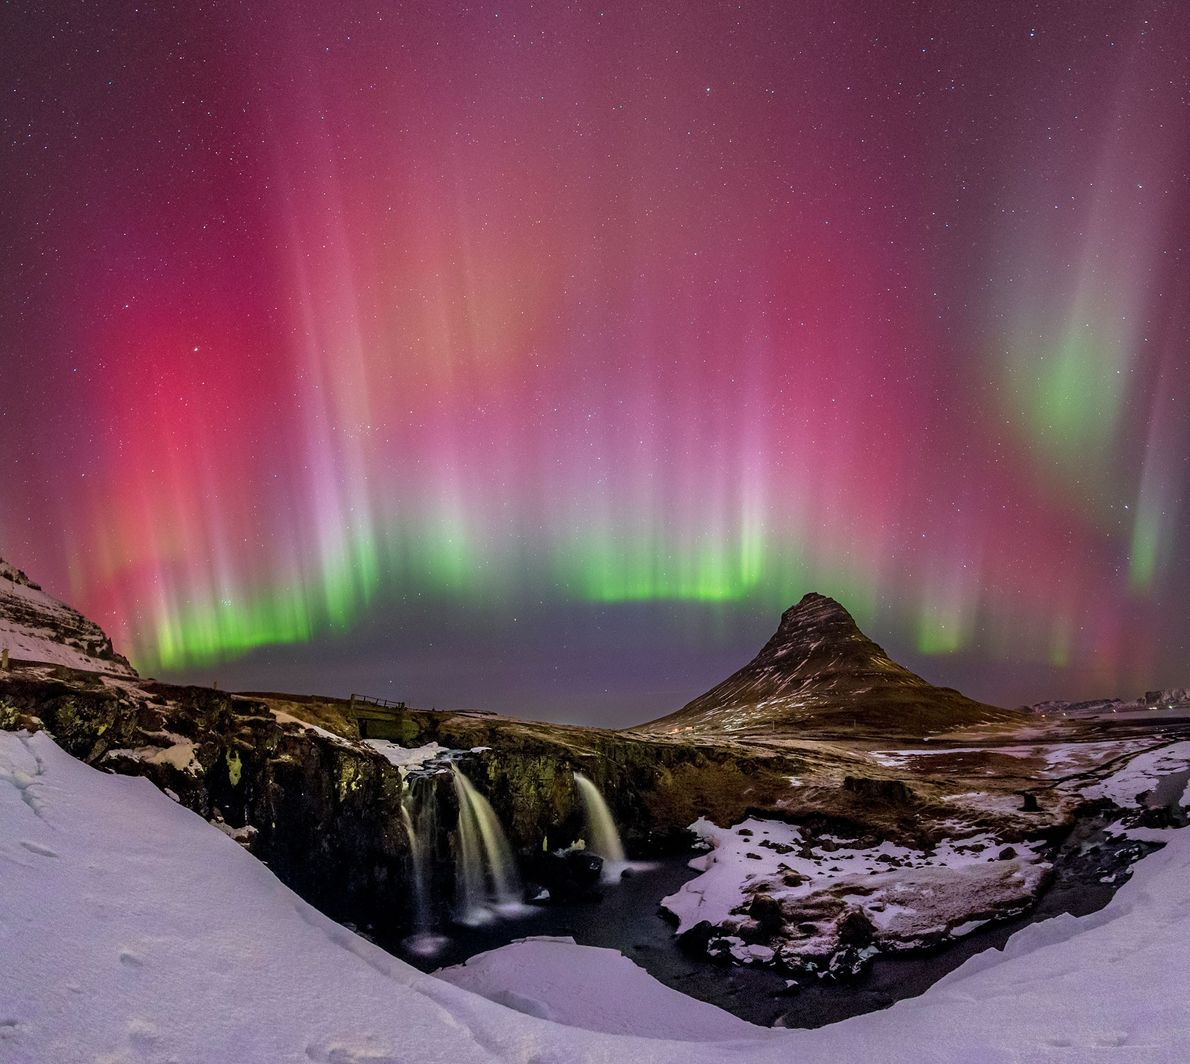 A night view of a waterfall and icicles in Iceland, accented by the northern lights.